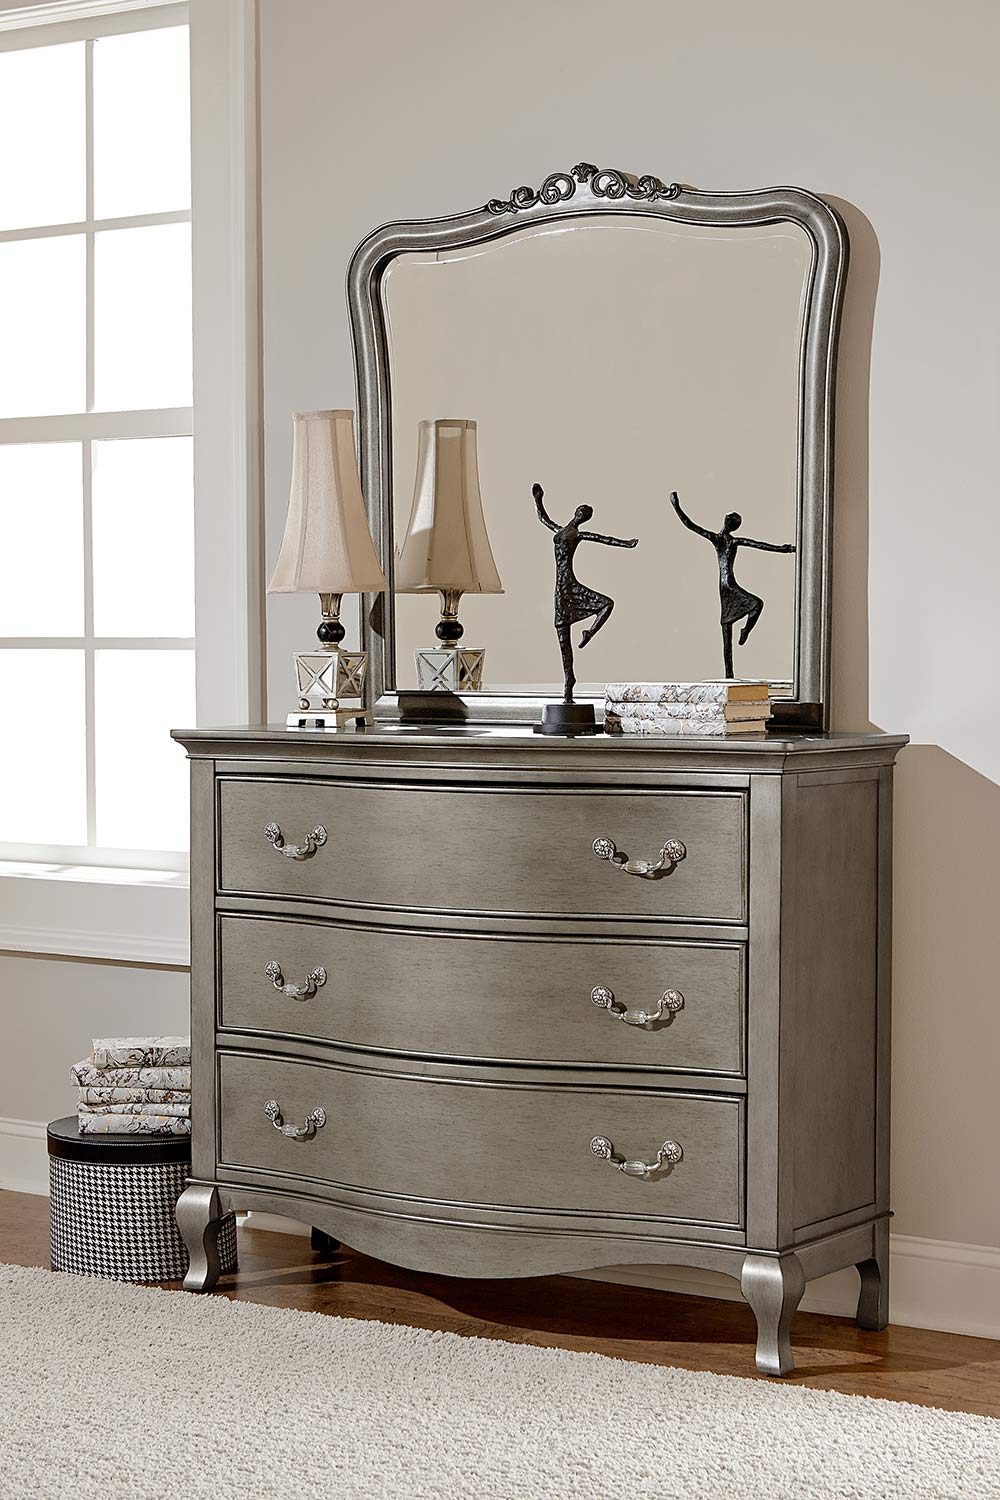 NE Kids Kensington 3 Drawer Single Dresser with Mirror - Antique Silver